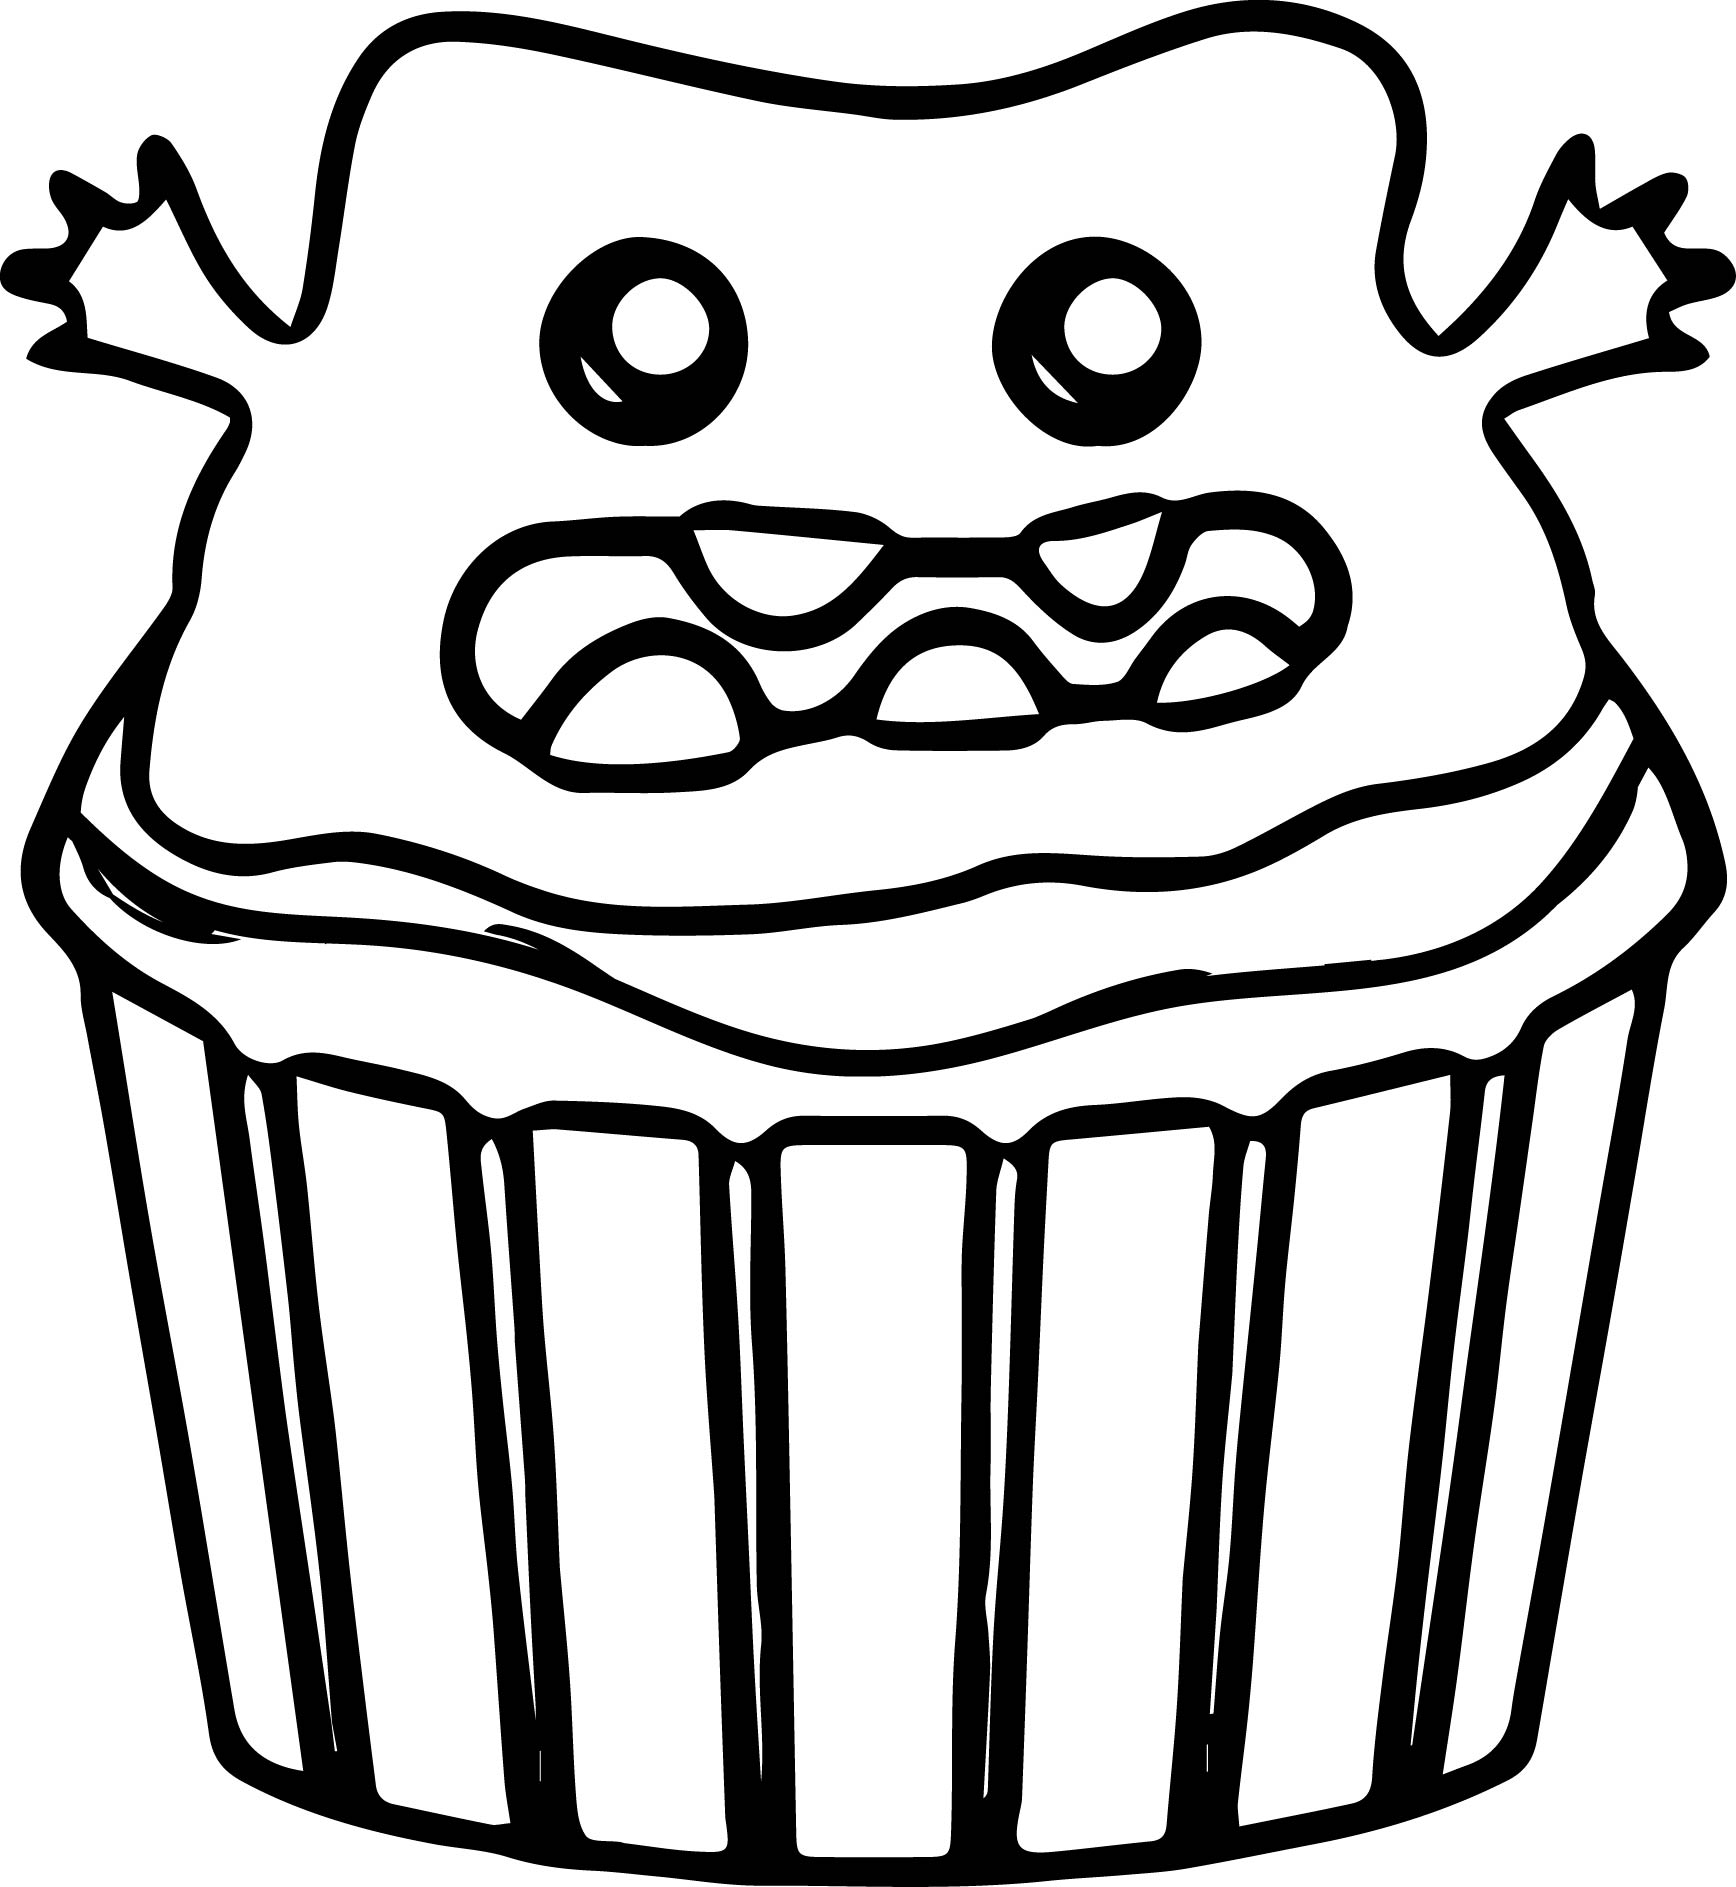 Creature Halloween Cupcake Coloring Page